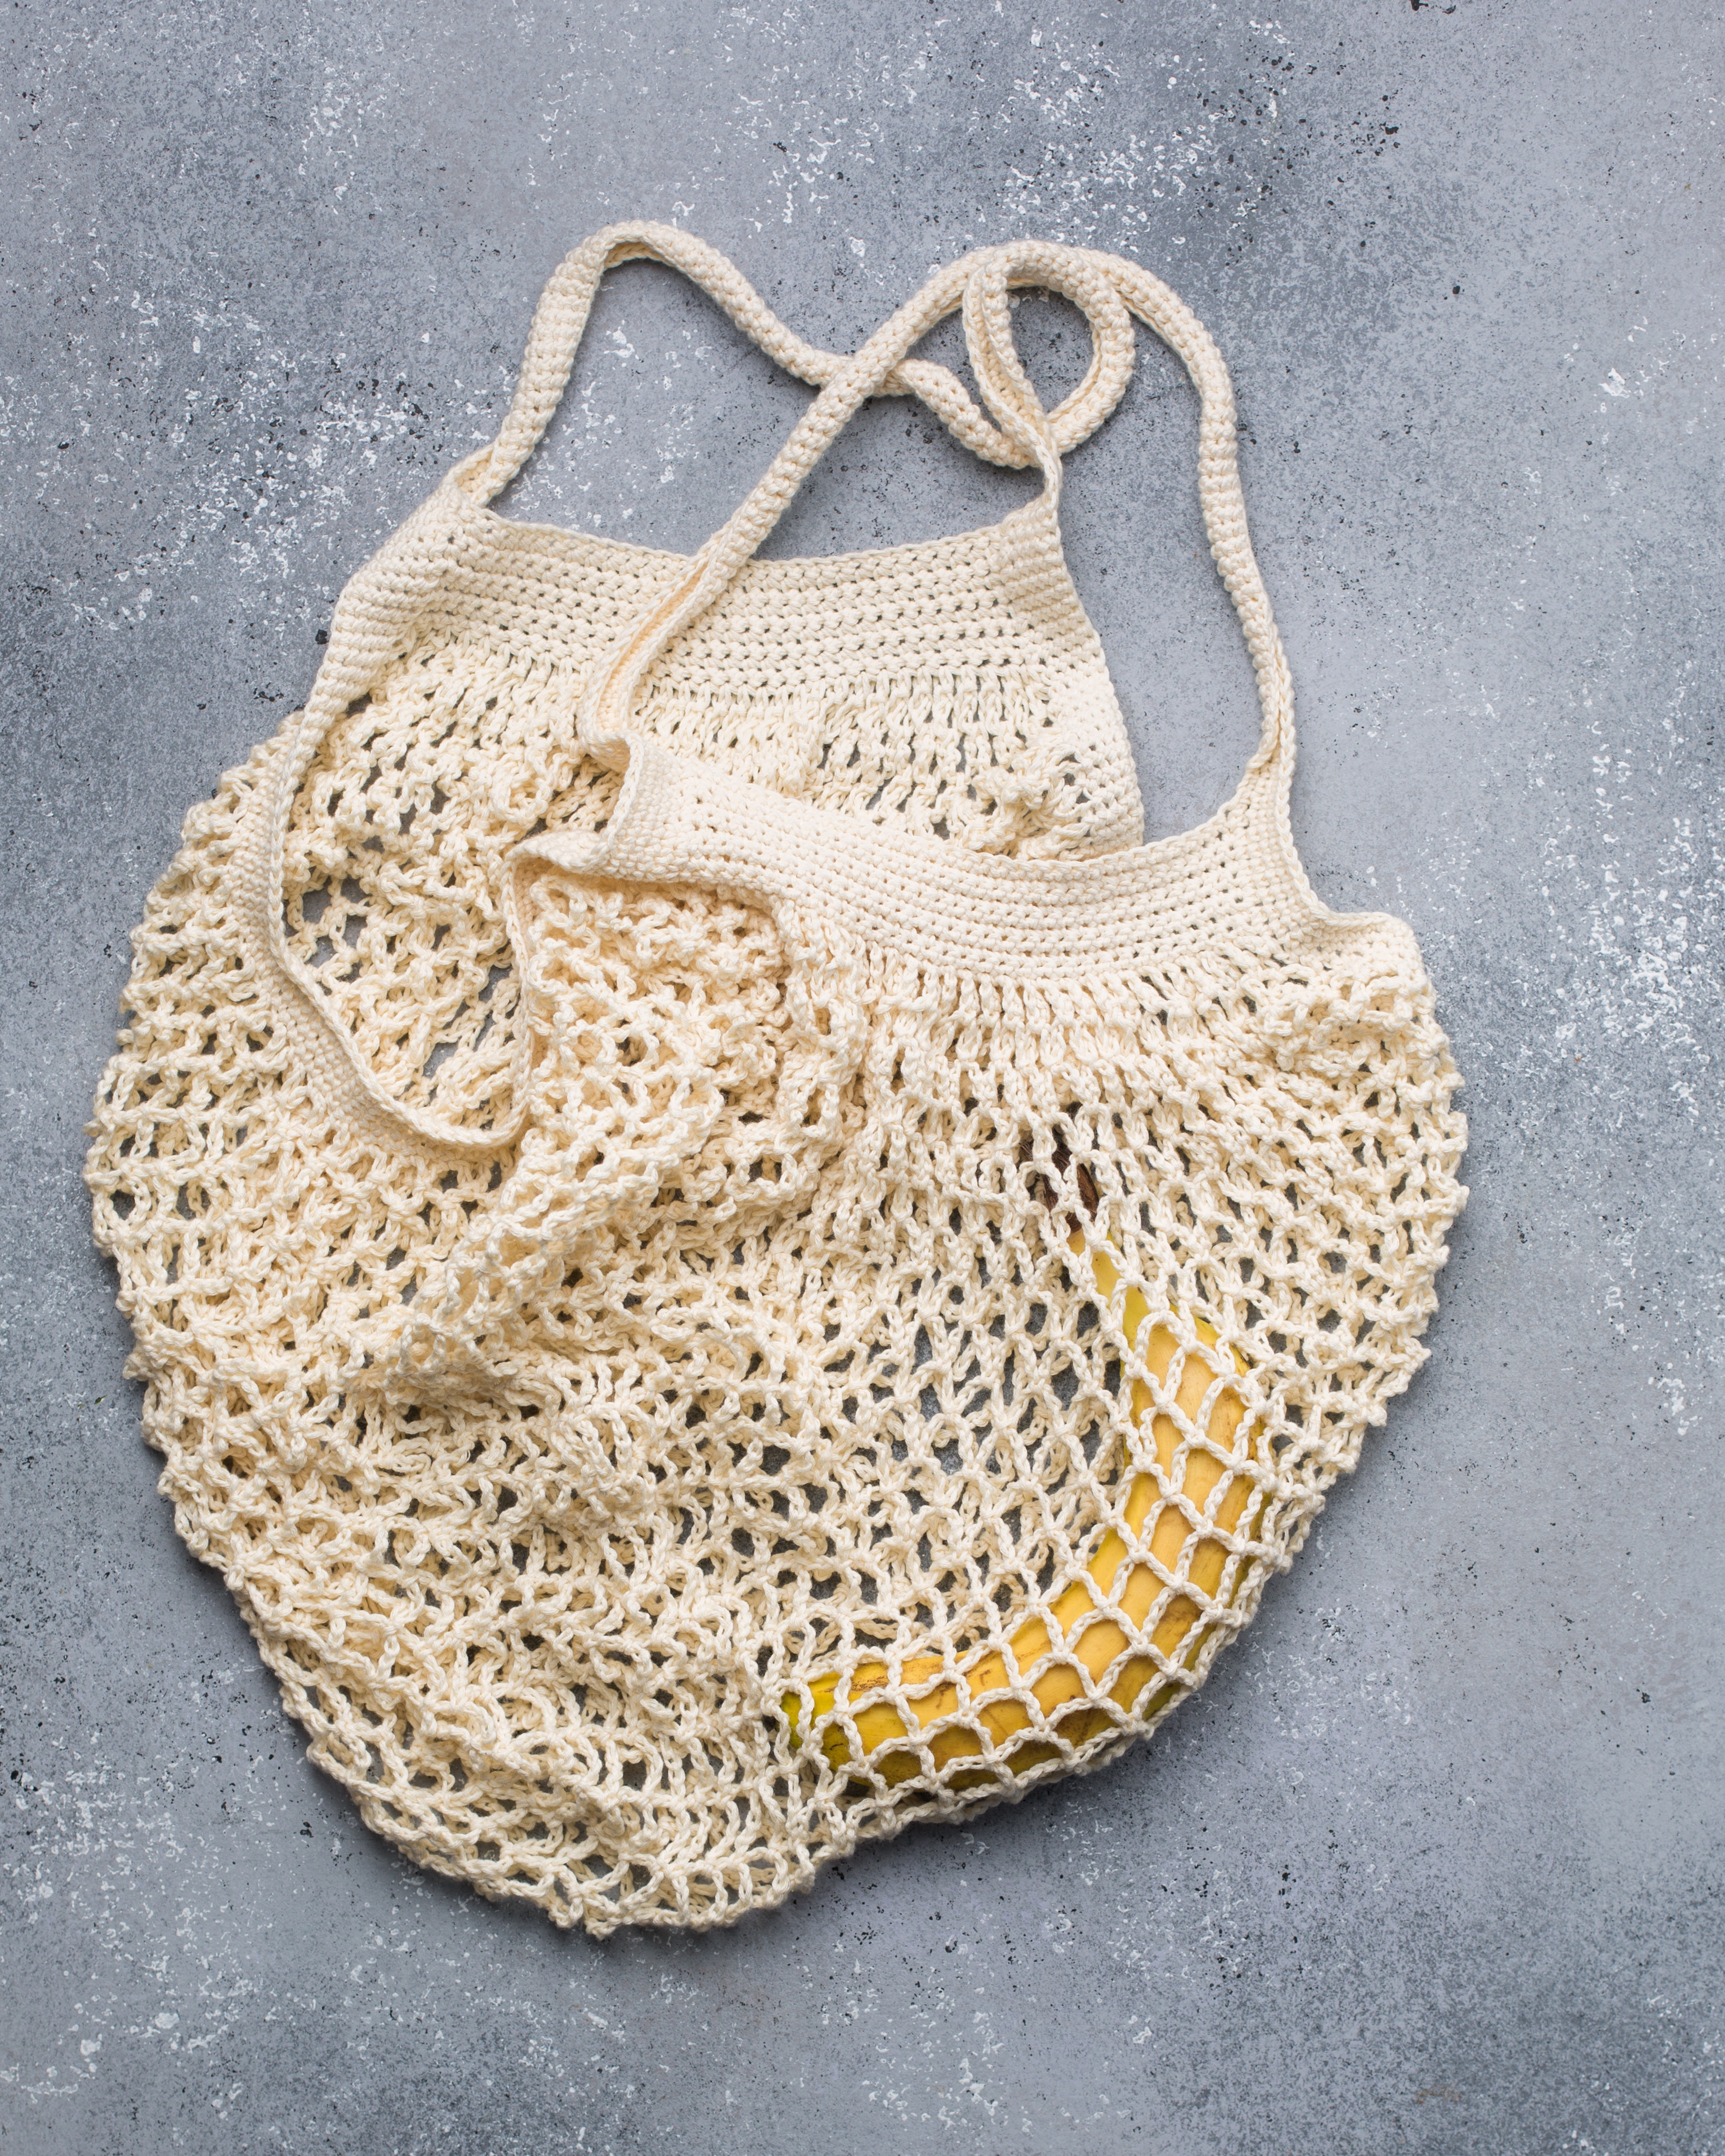 A white crocheted bag with a banana